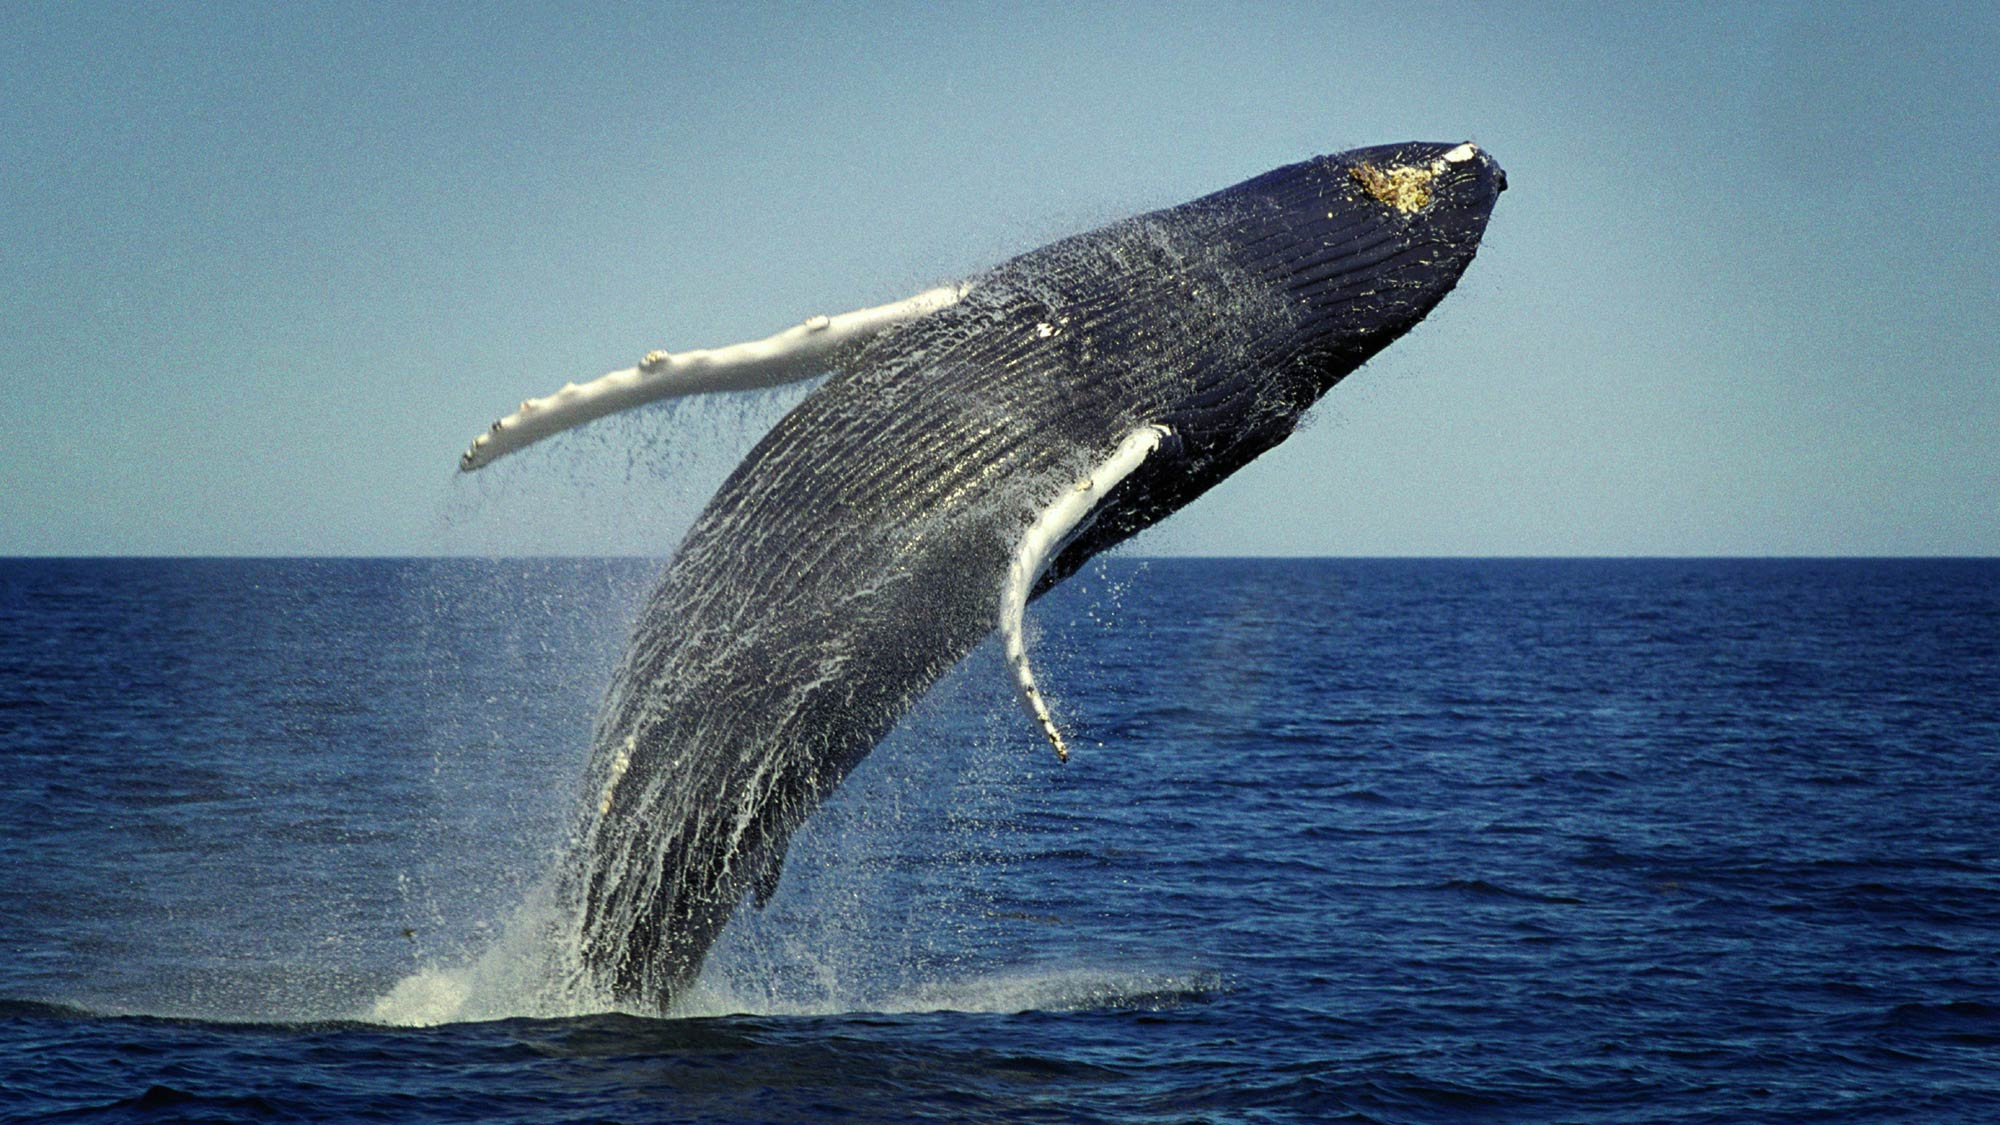 A Hump Back Whale breaching off the coast of Maine. Photo: iStock. iStock_000009634005_Large